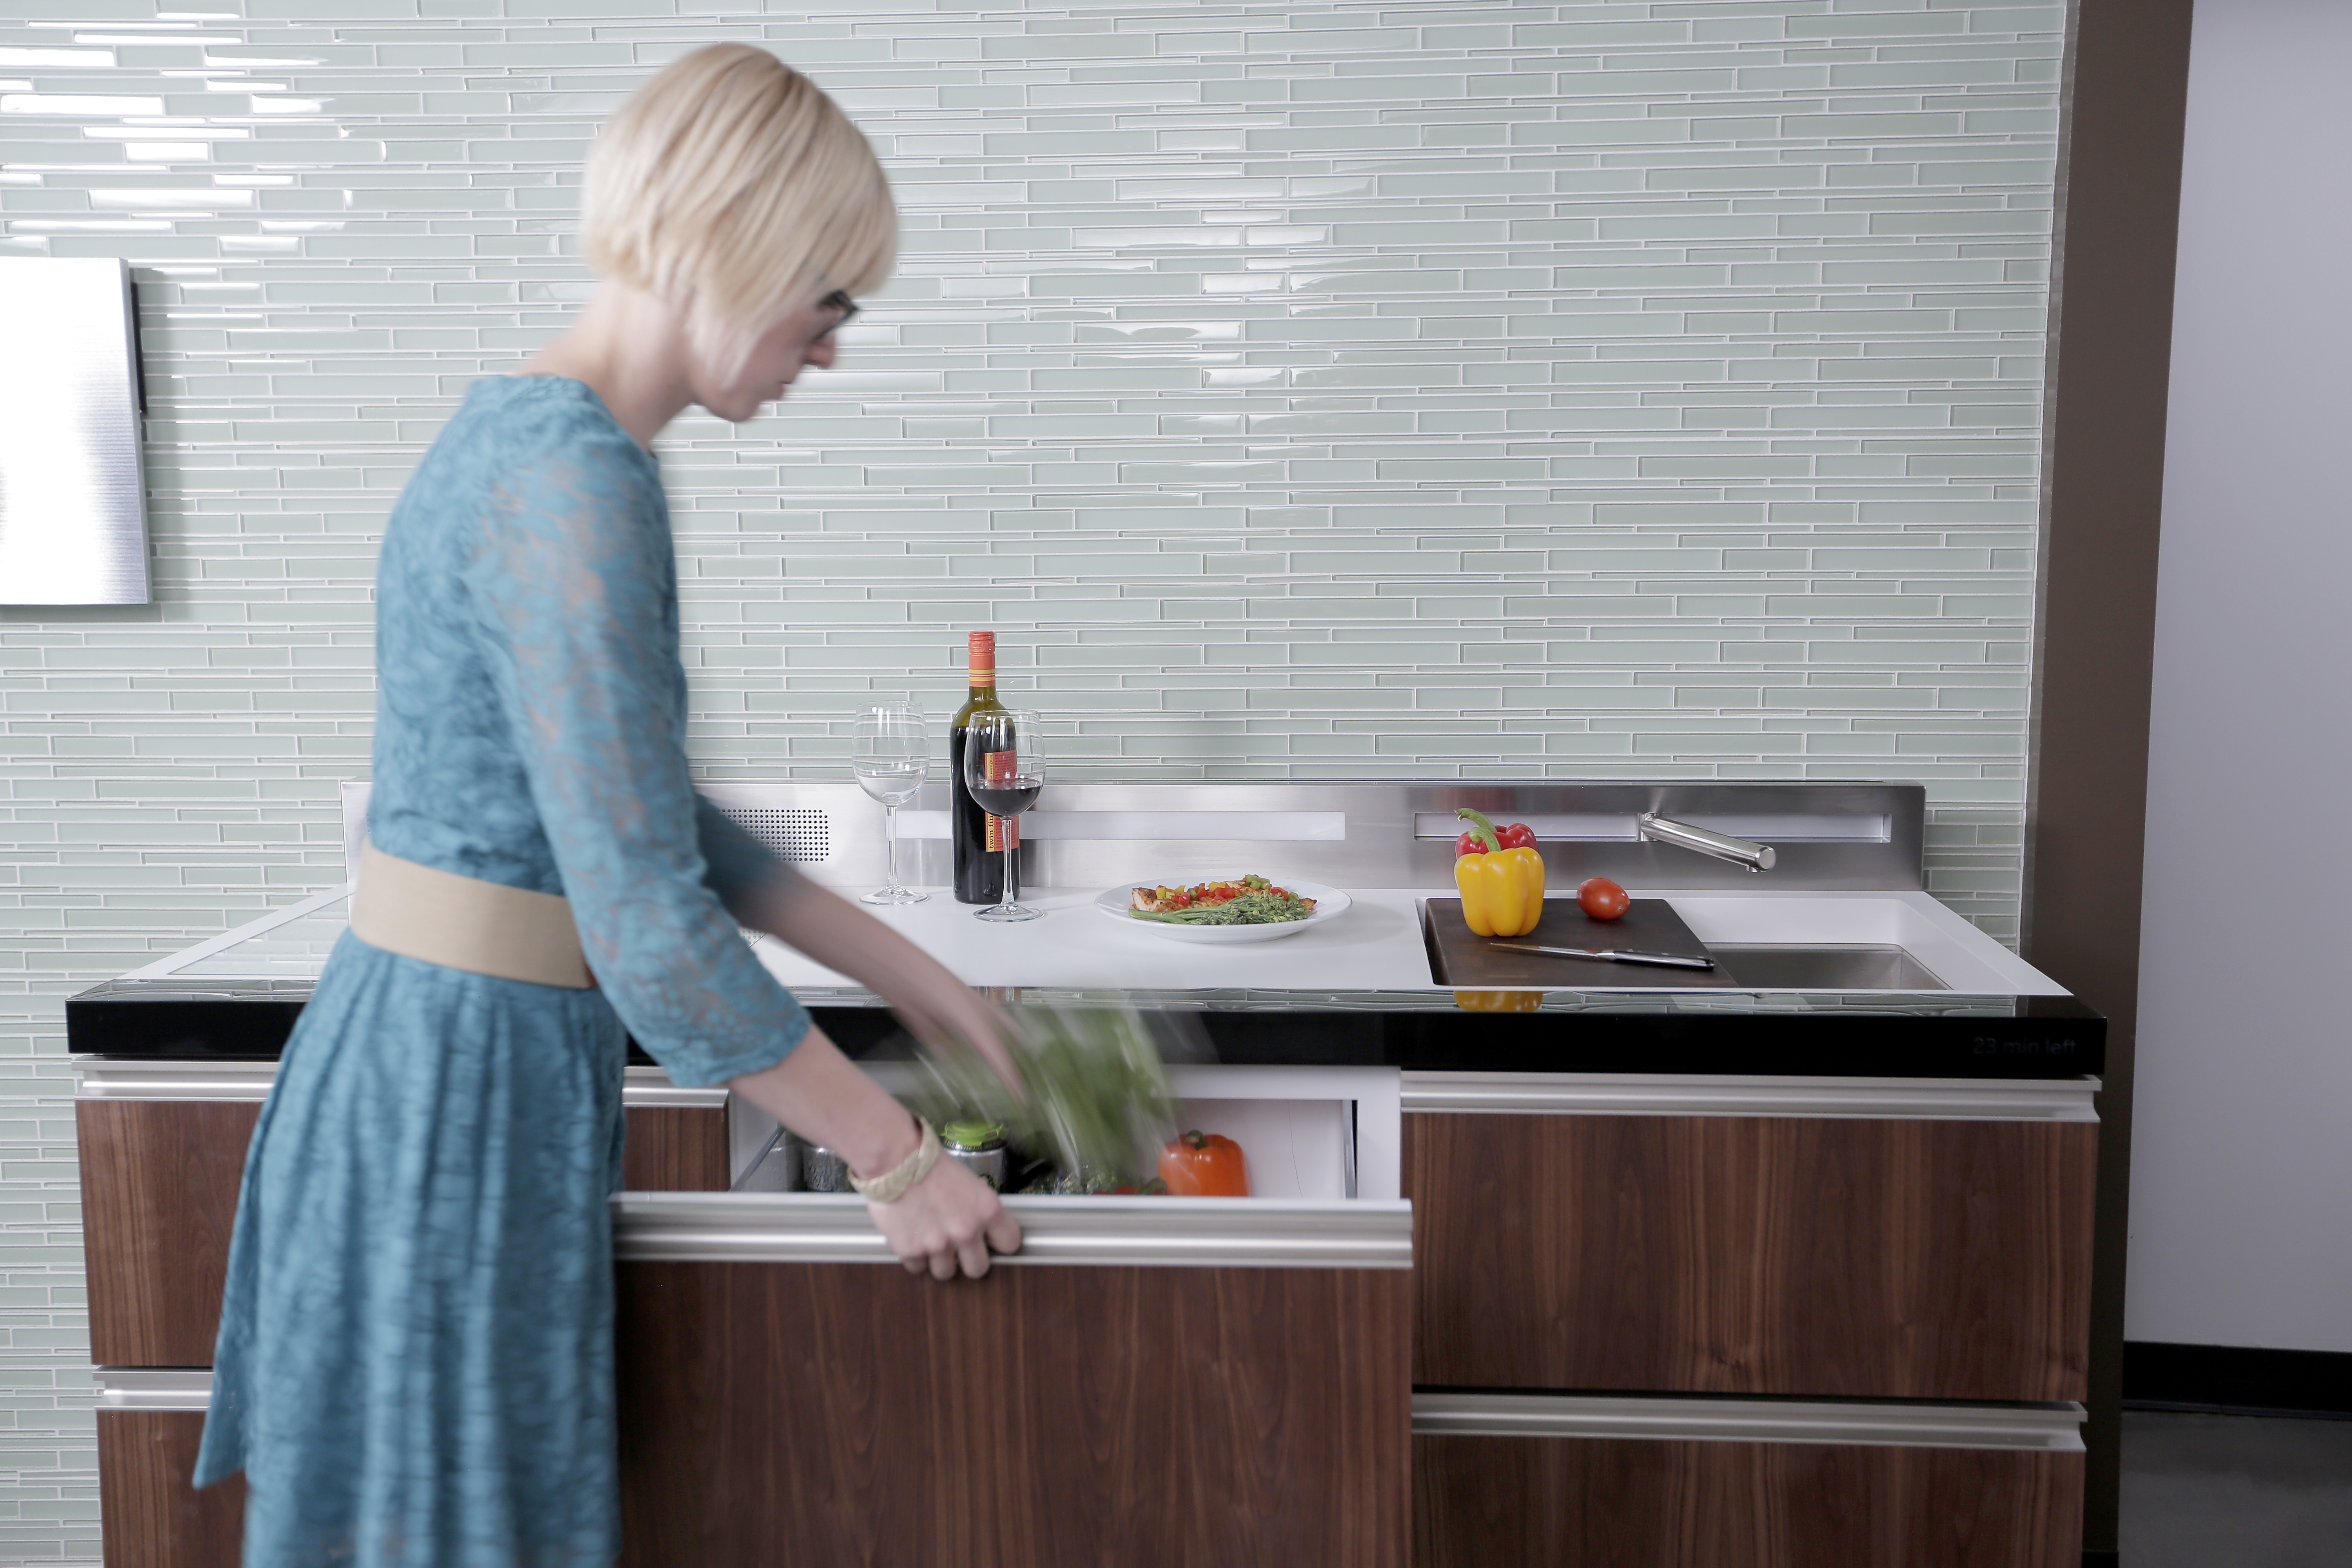 Live Large in Small Spaces with GEs New Micro Kitchen Concepts